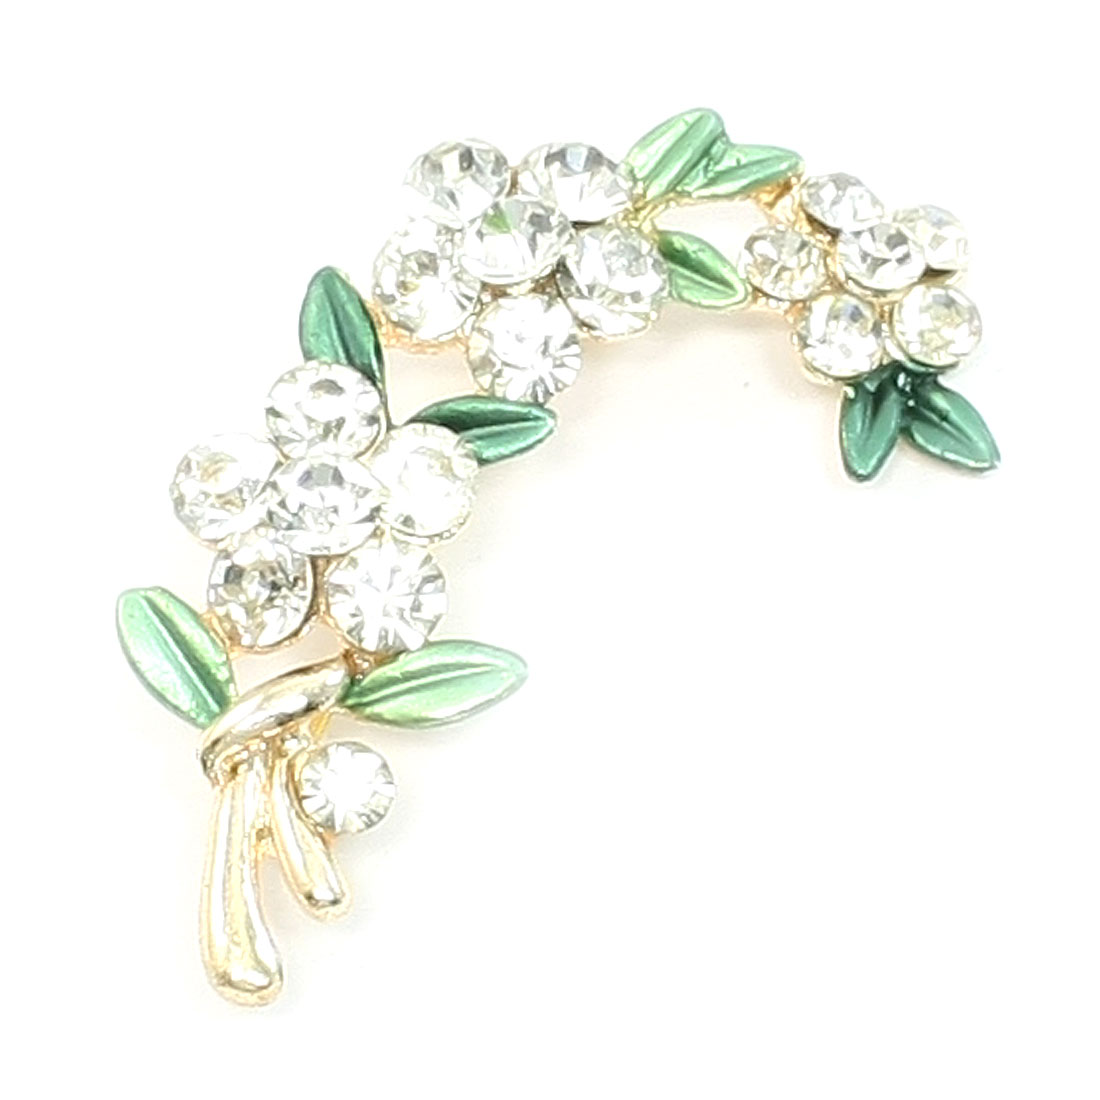 Woman Bling Light Green Faux Rhinestone Flower Safety Pin Brooch